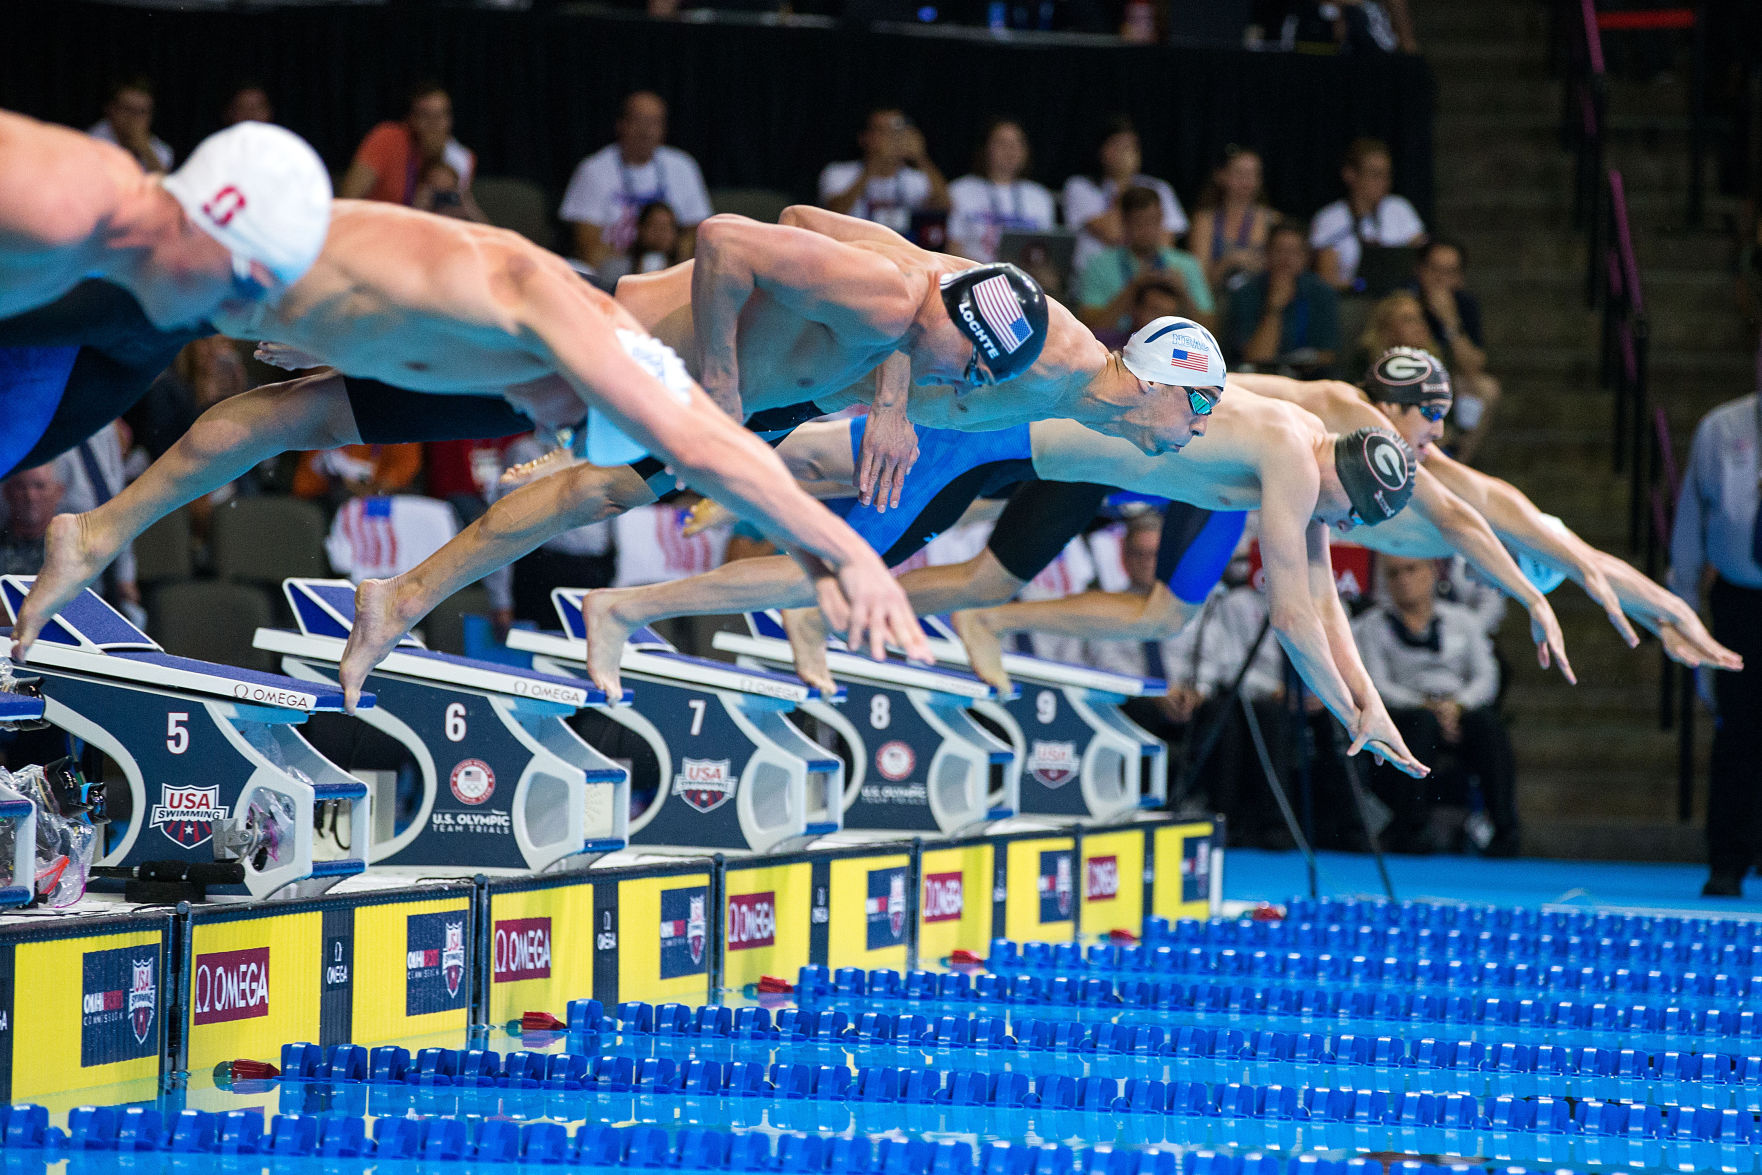 Swim Trials spurred more than 74 million